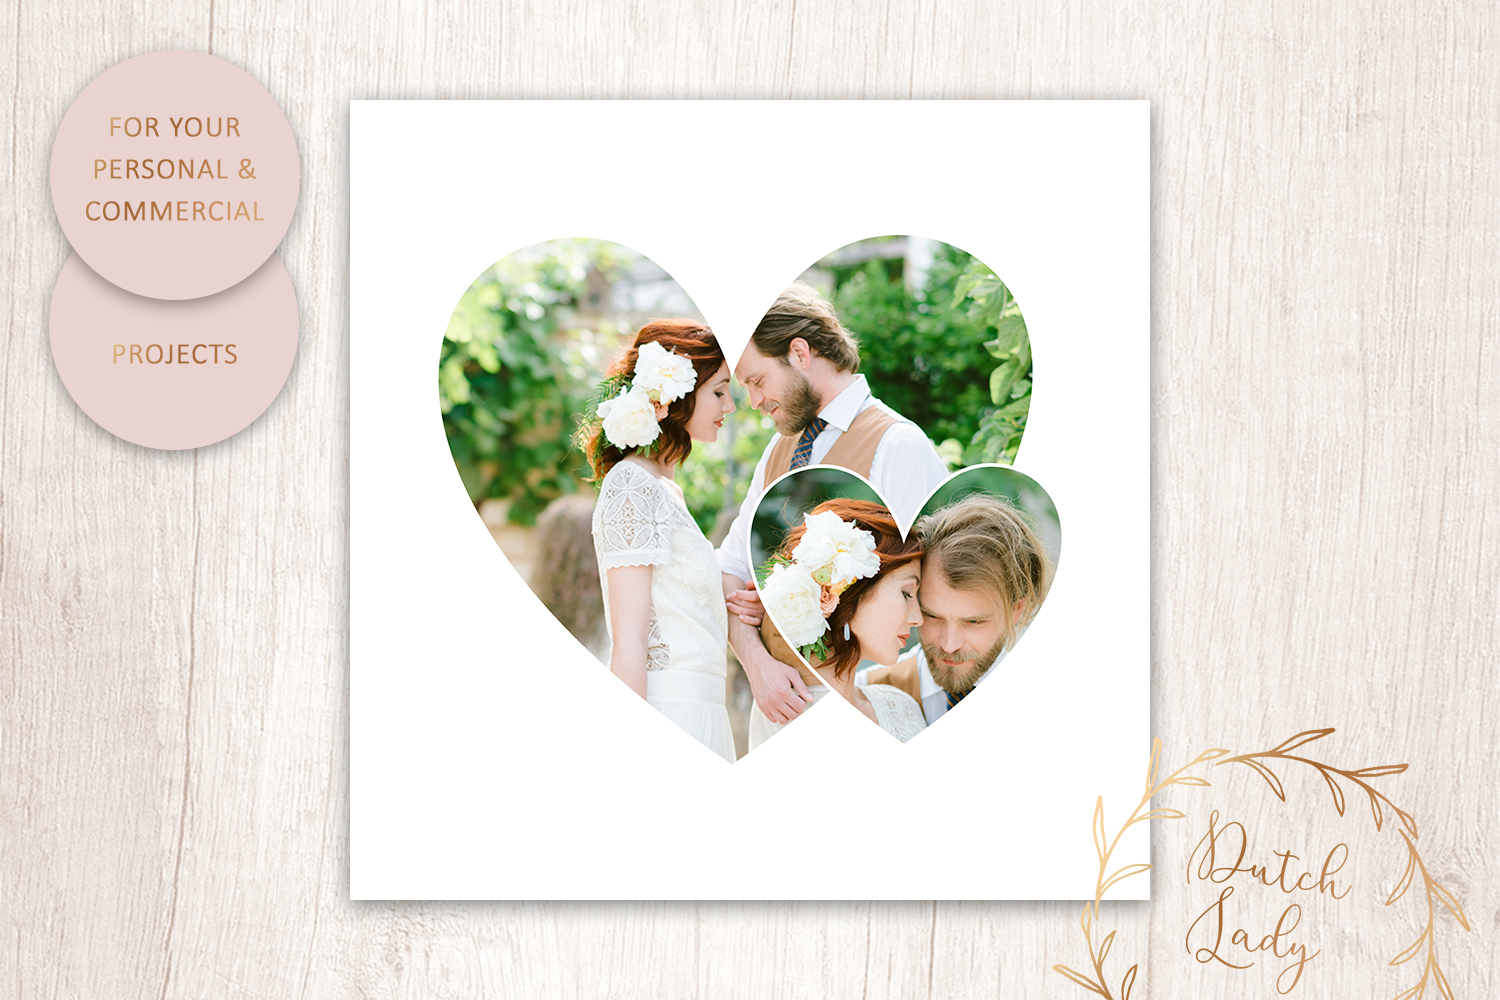 PSD Photo Collage - Adobe Photoshop Template - #4 - image collage template -